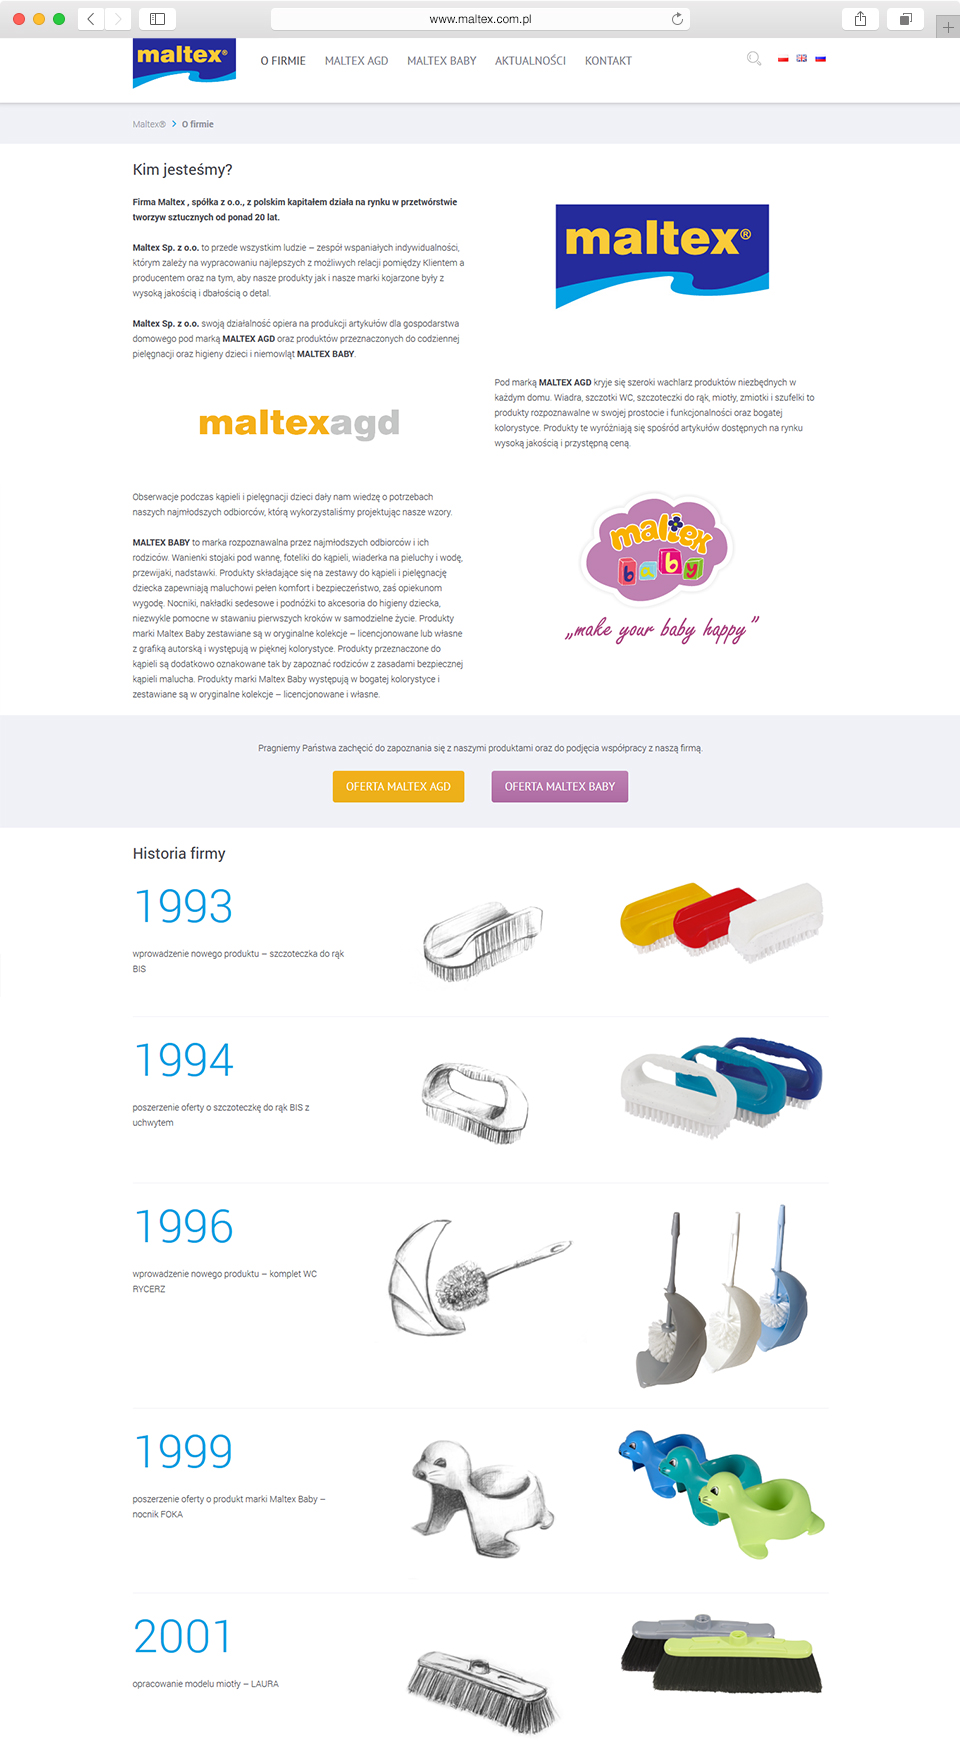 maltex-agd-about-company